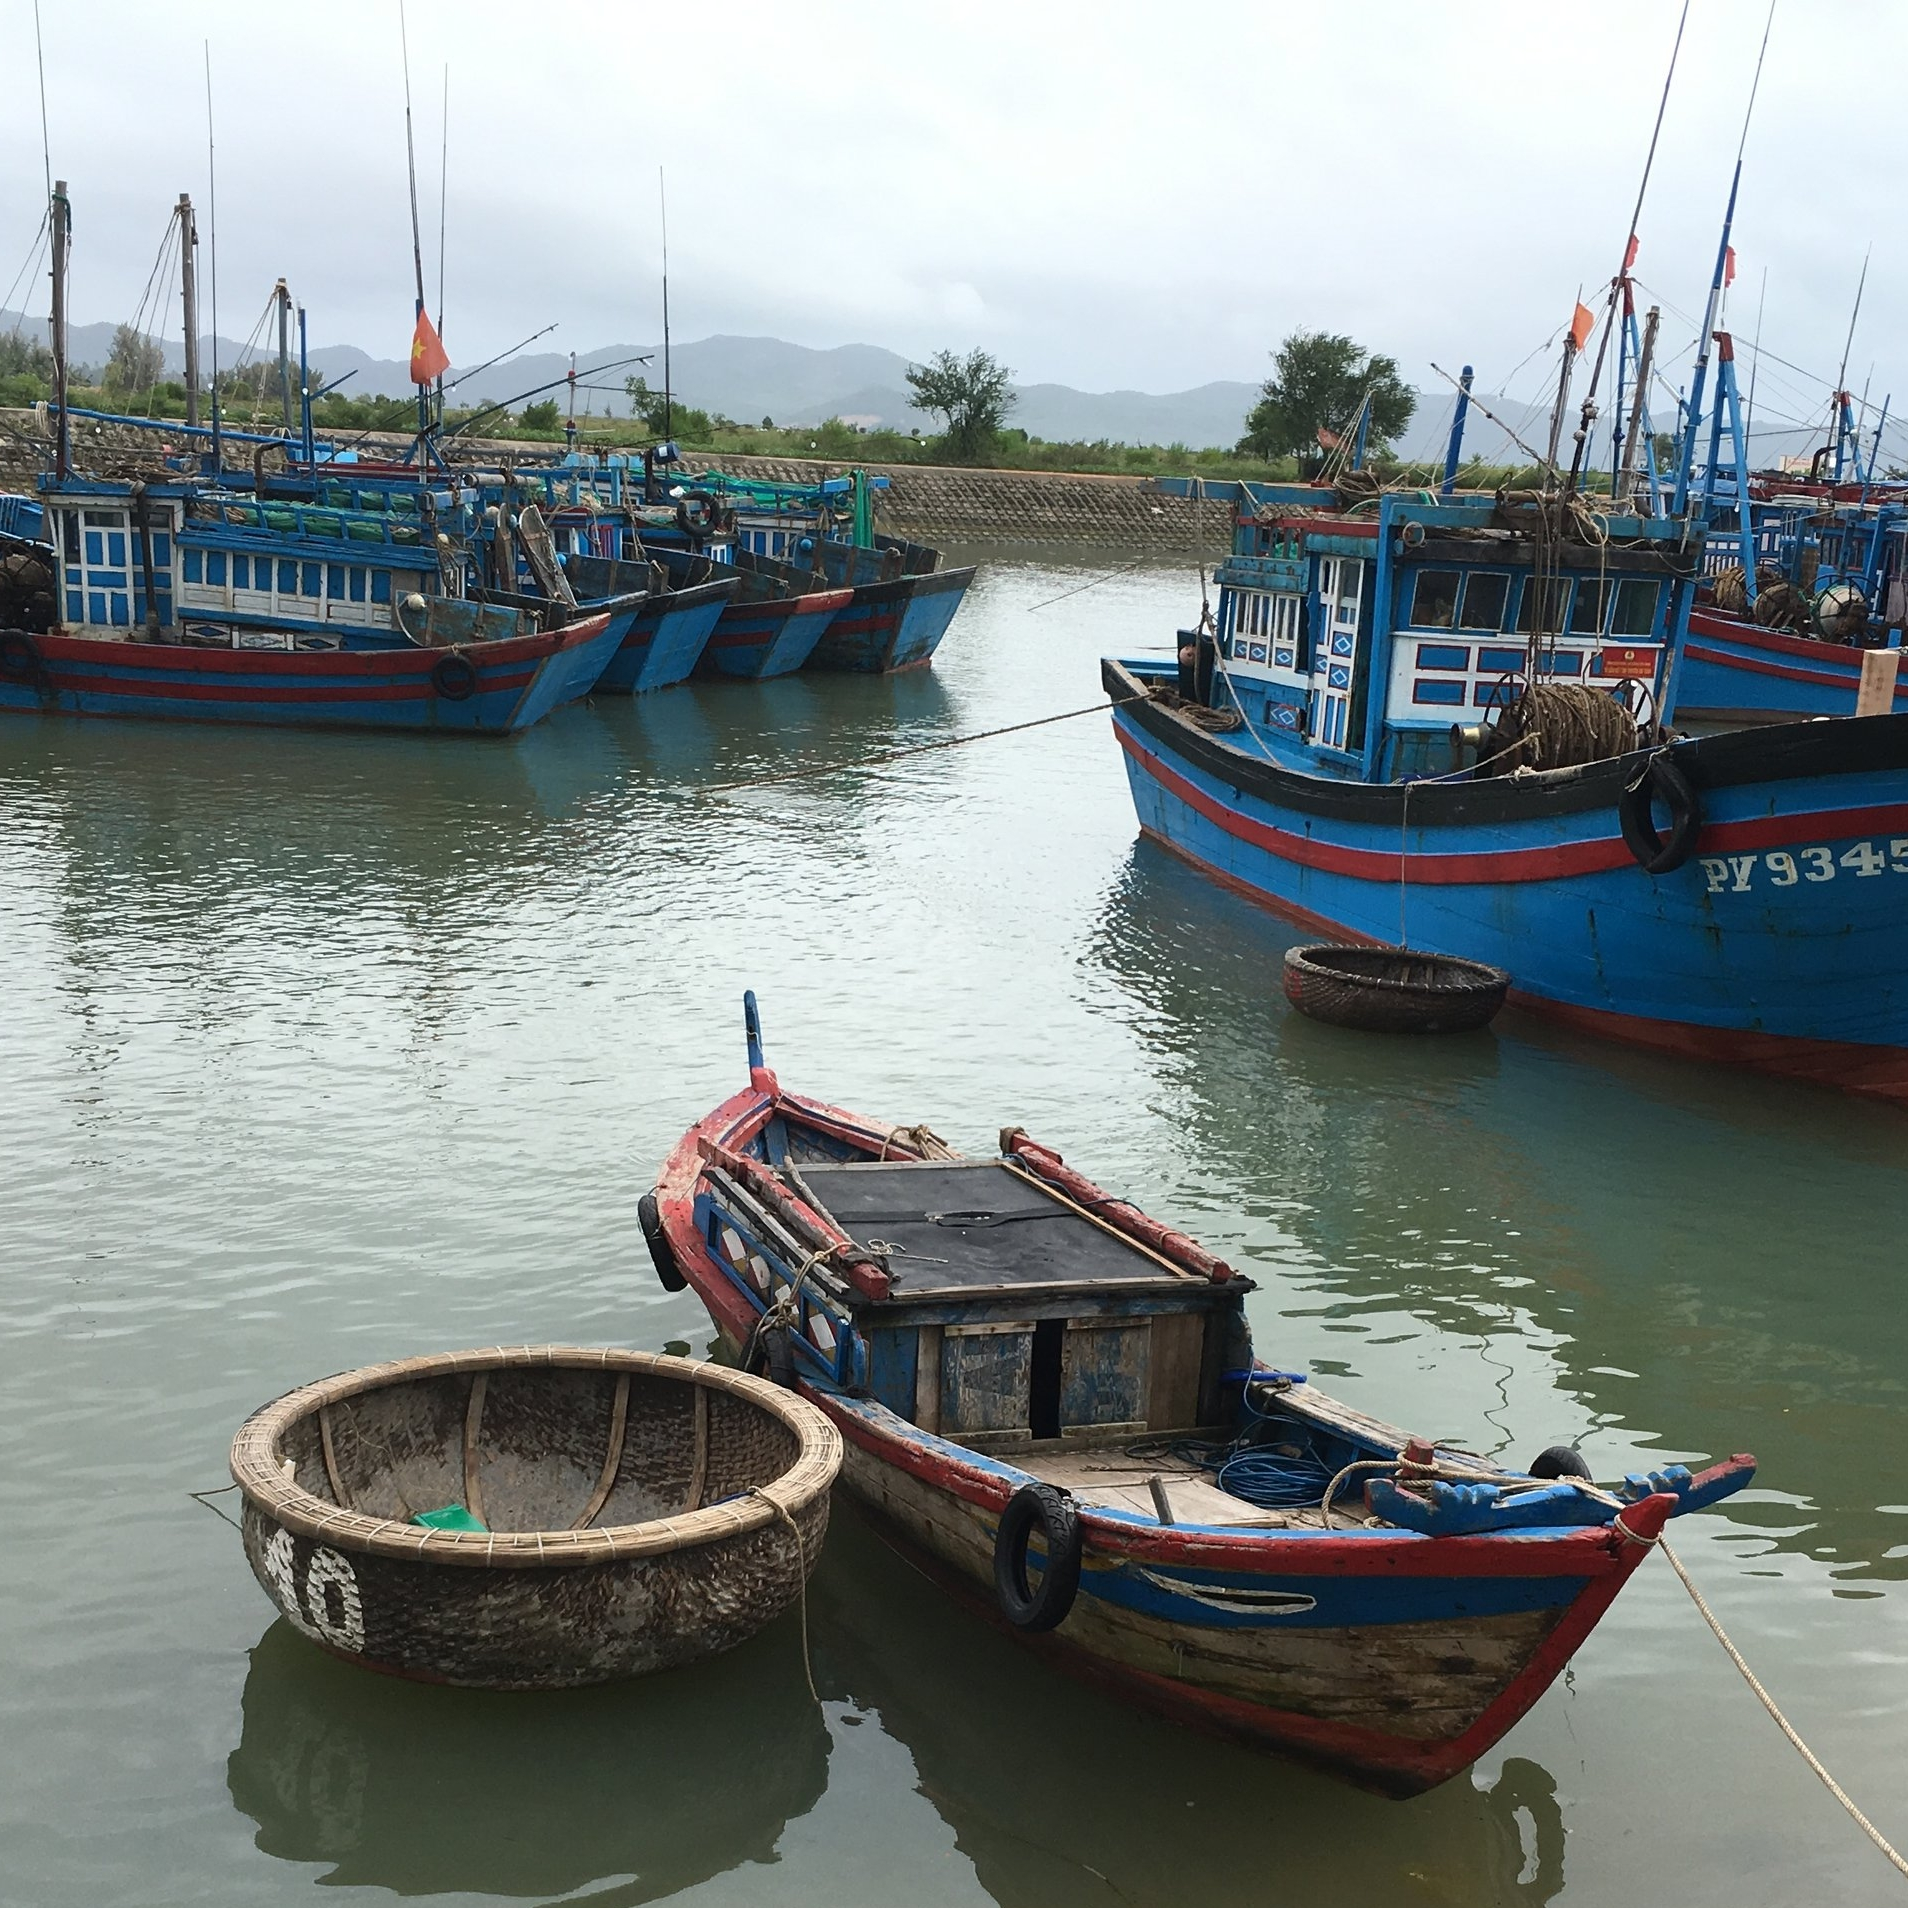 A variety of boats sit and wait in Xuan Dai Bay, Phu Yen Province. Trawl boats are in the background with a traditional basket boat in the foreground.  Photo by Do Huu Hoang.